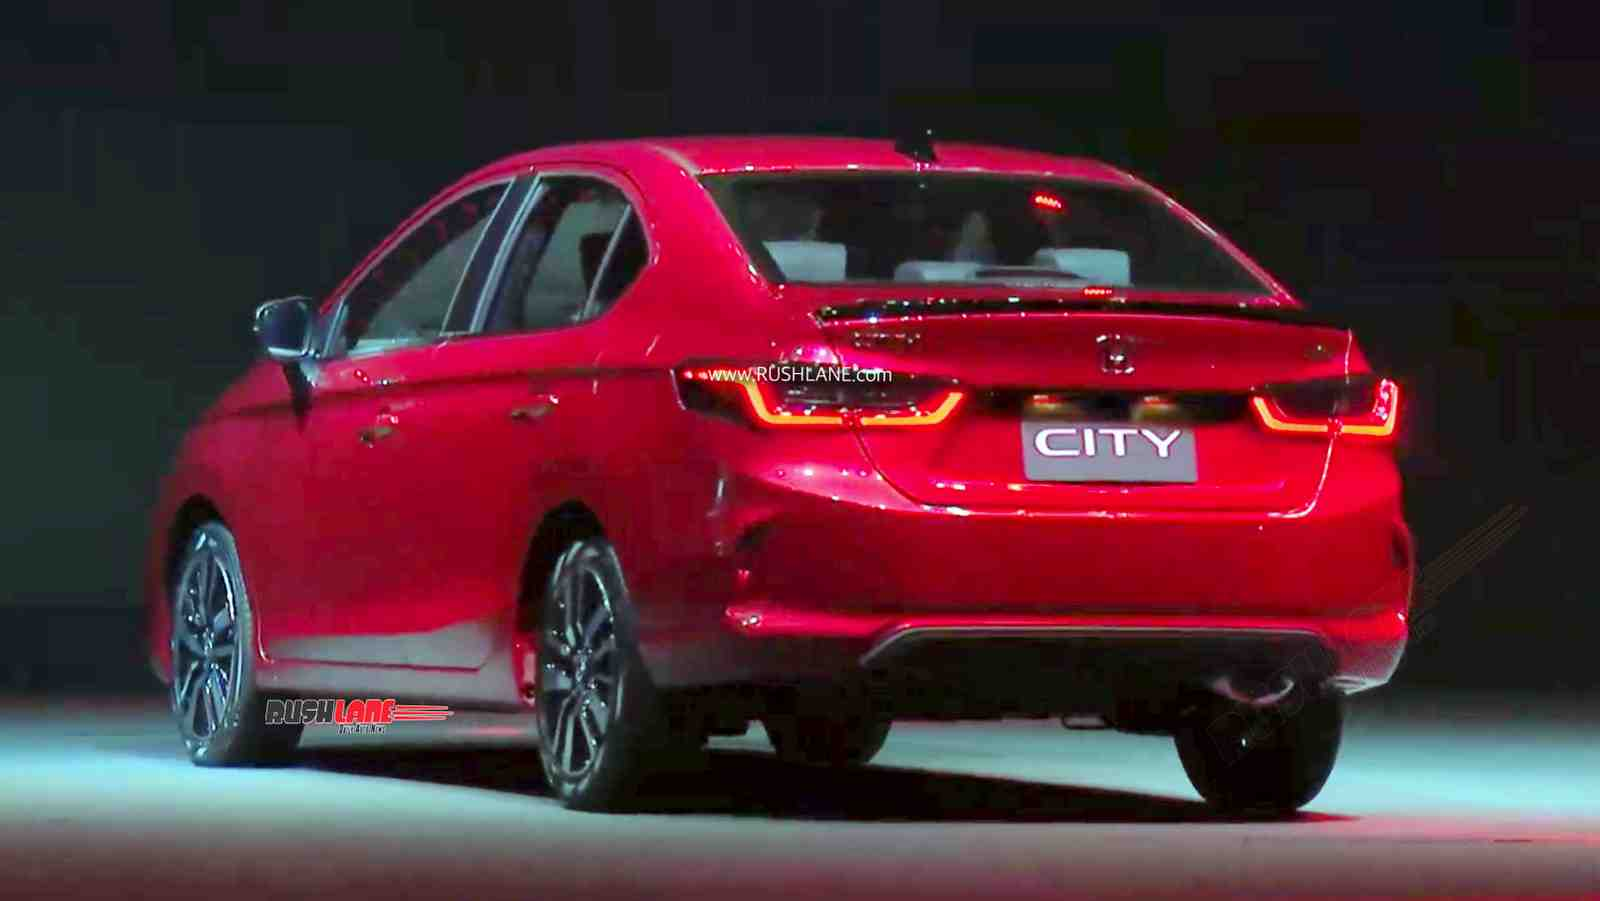 2020 Honda City RS TURBO 1 liter launched - Price ...